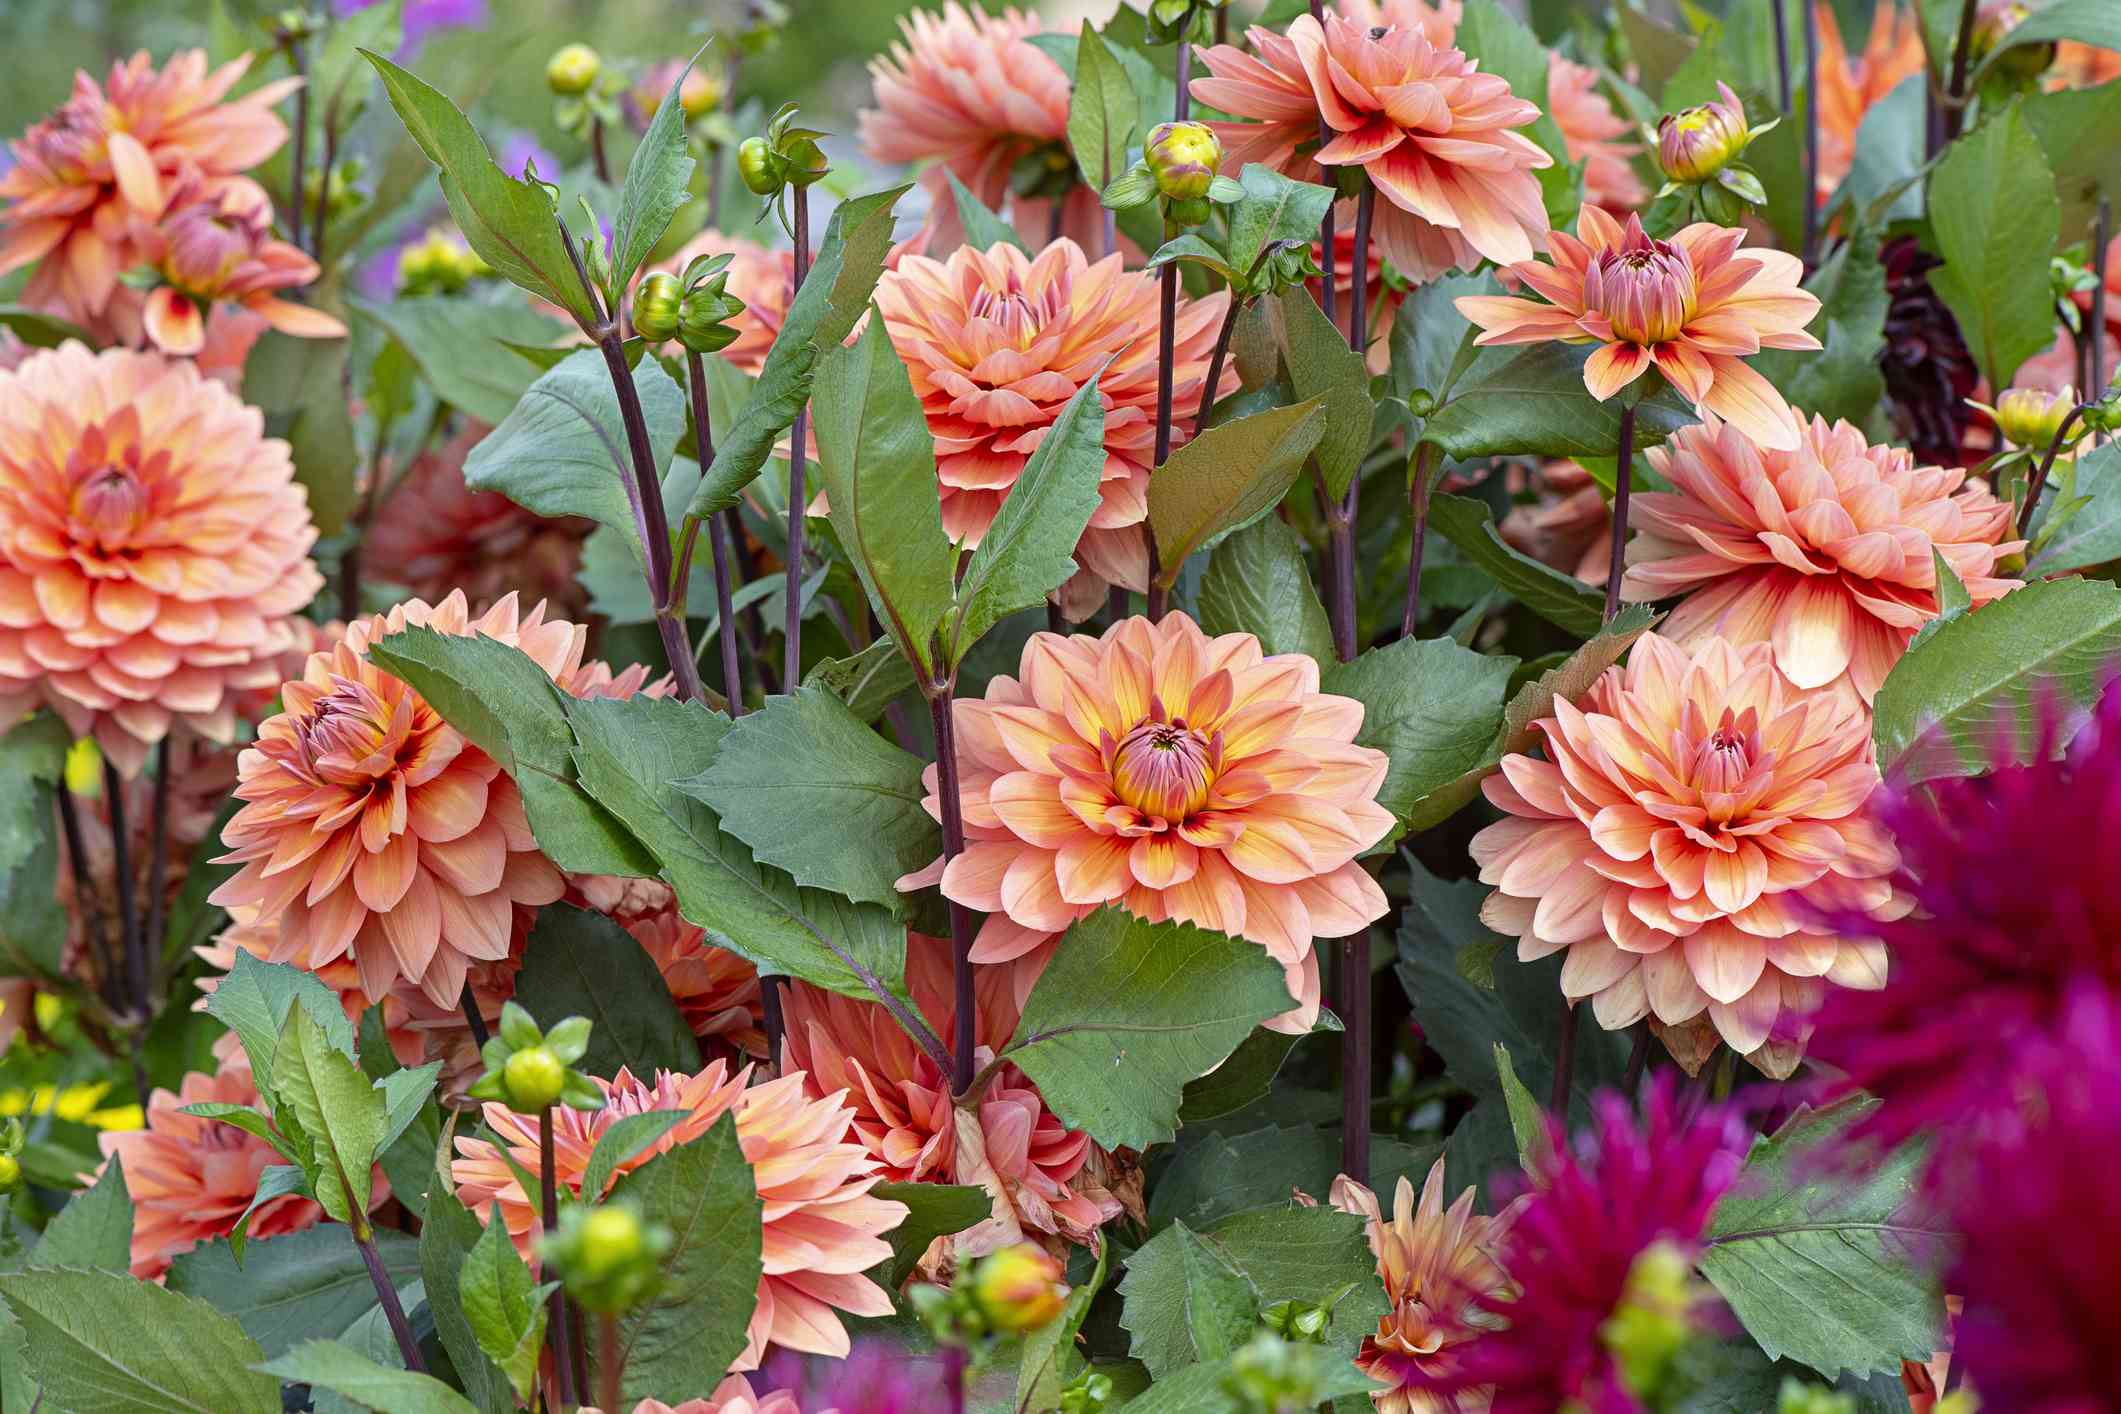 orange and pink dahlia flowers with green leaves and dark red stems growing in garden